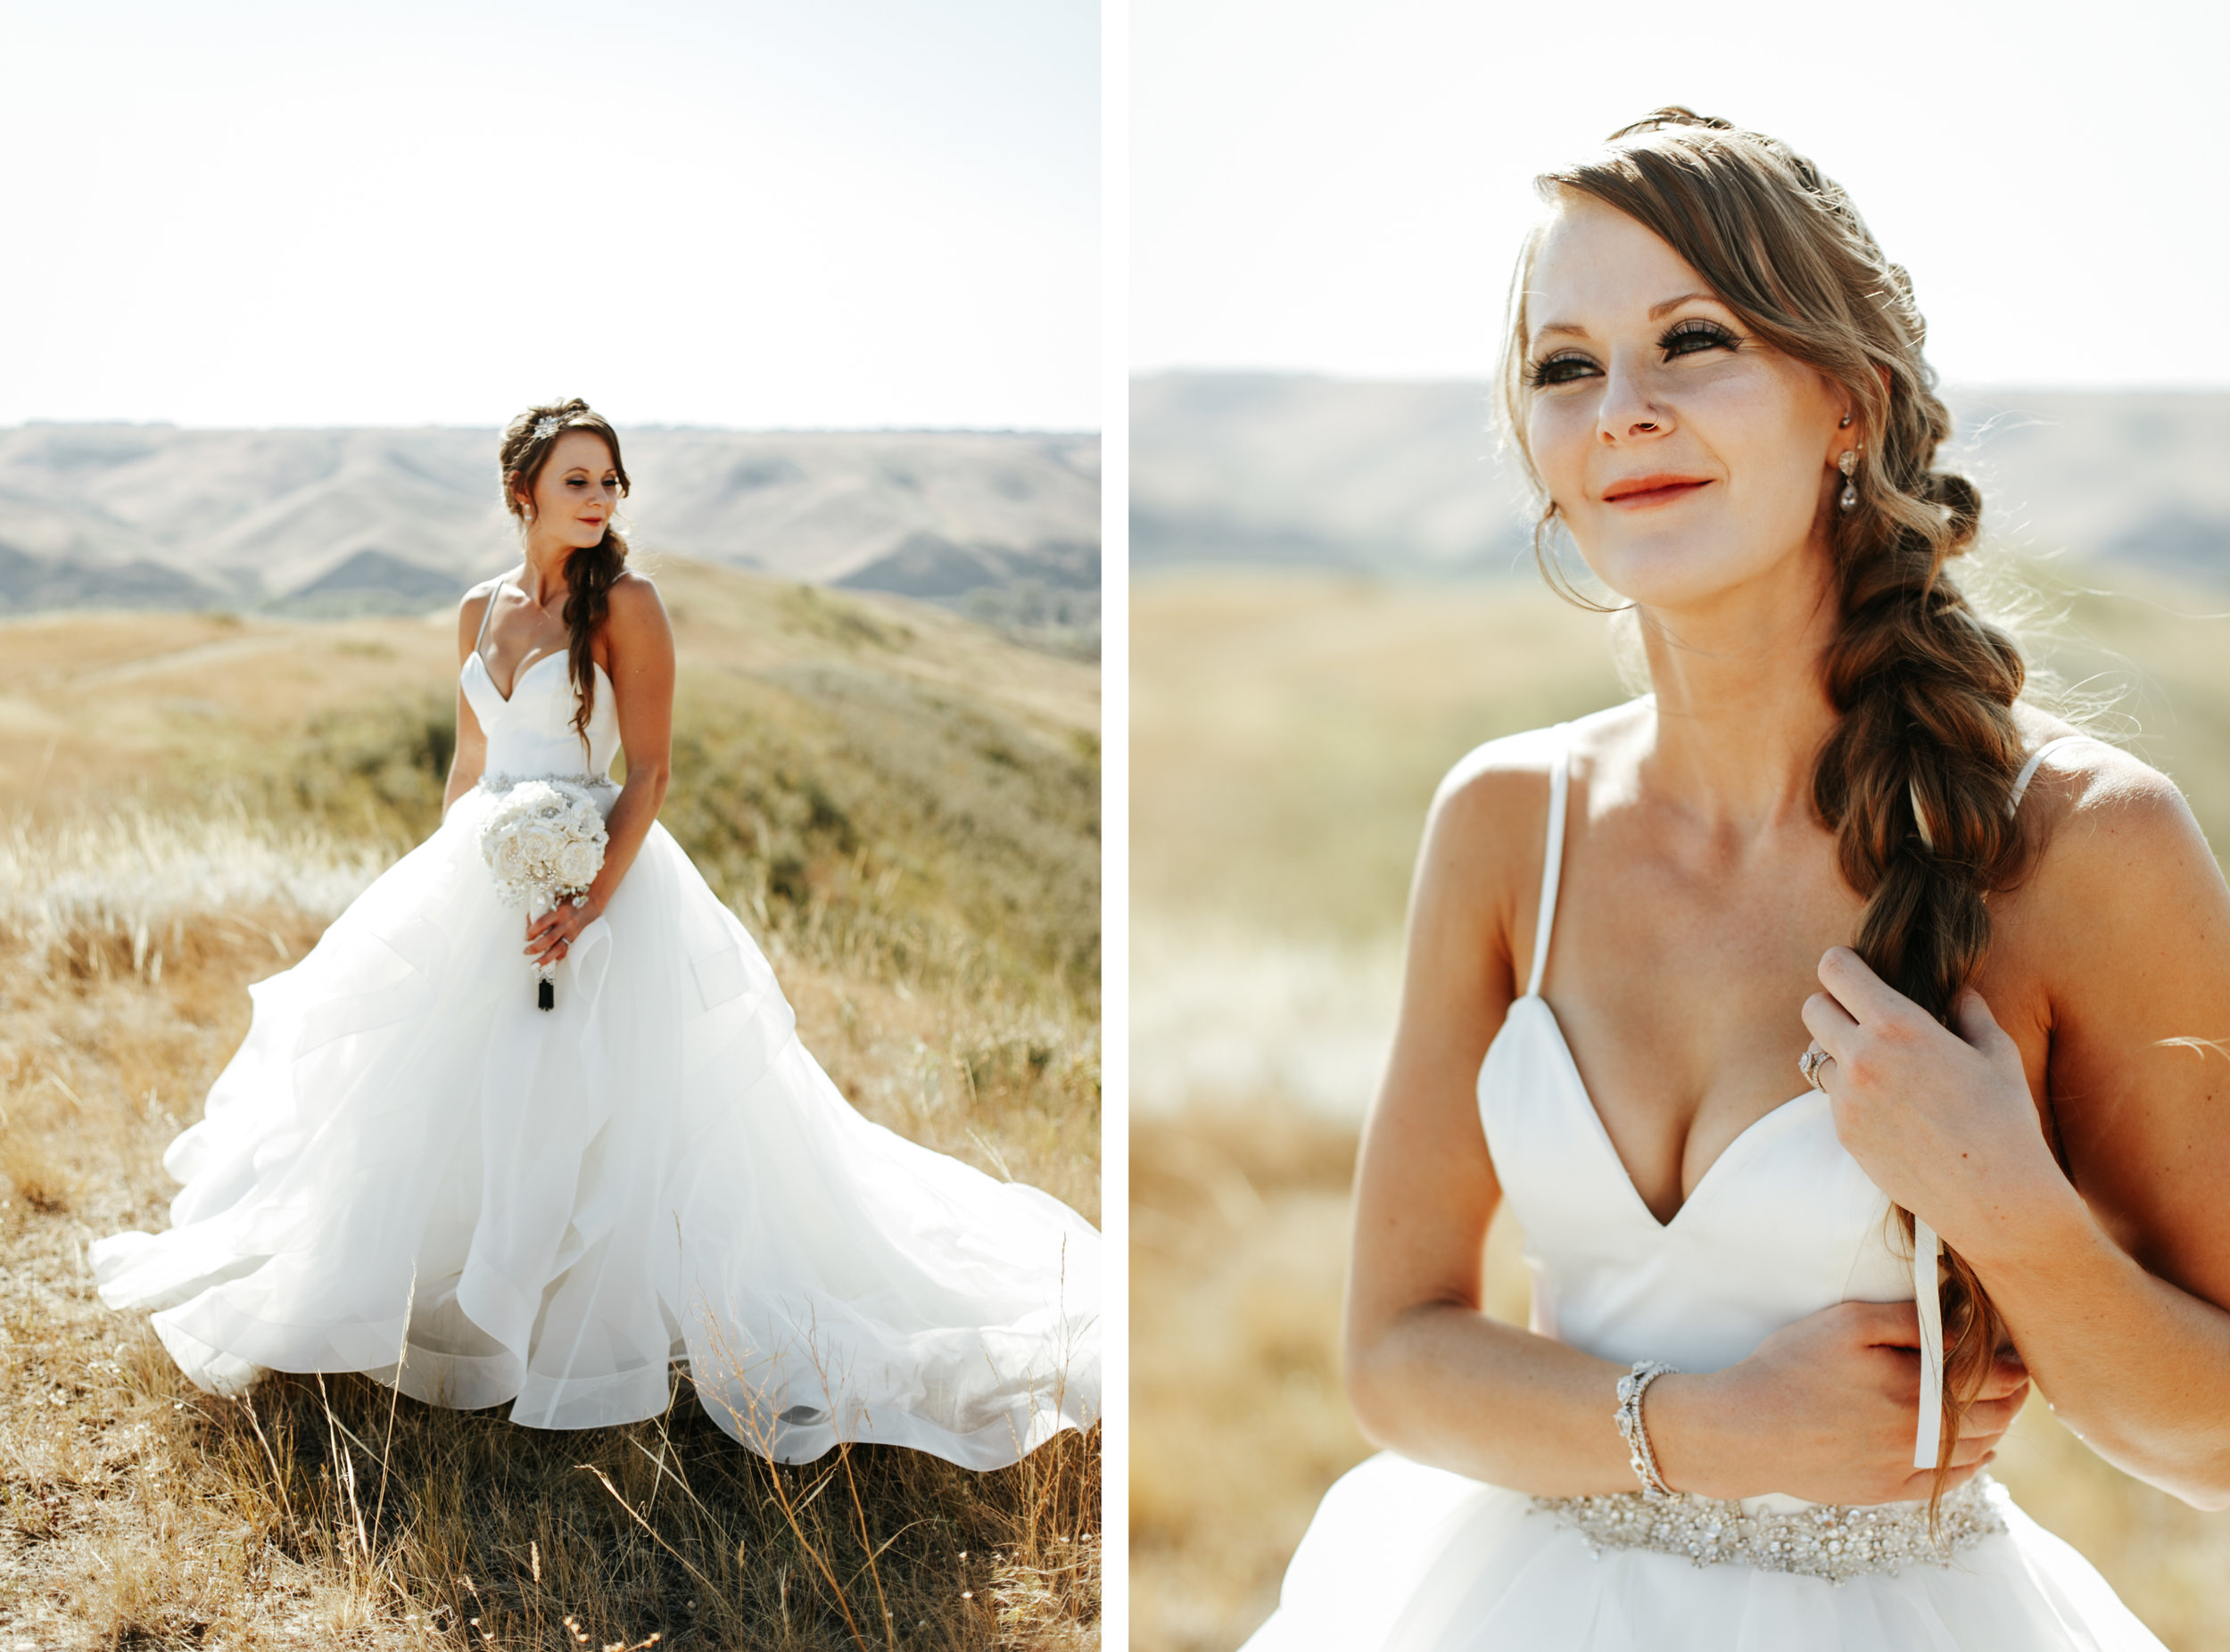 lethbridge-wedding-photography-love-and-be-loved-photographer-sean-sharla-henderson-lake-wedding-image-picture-photo-123.jpg